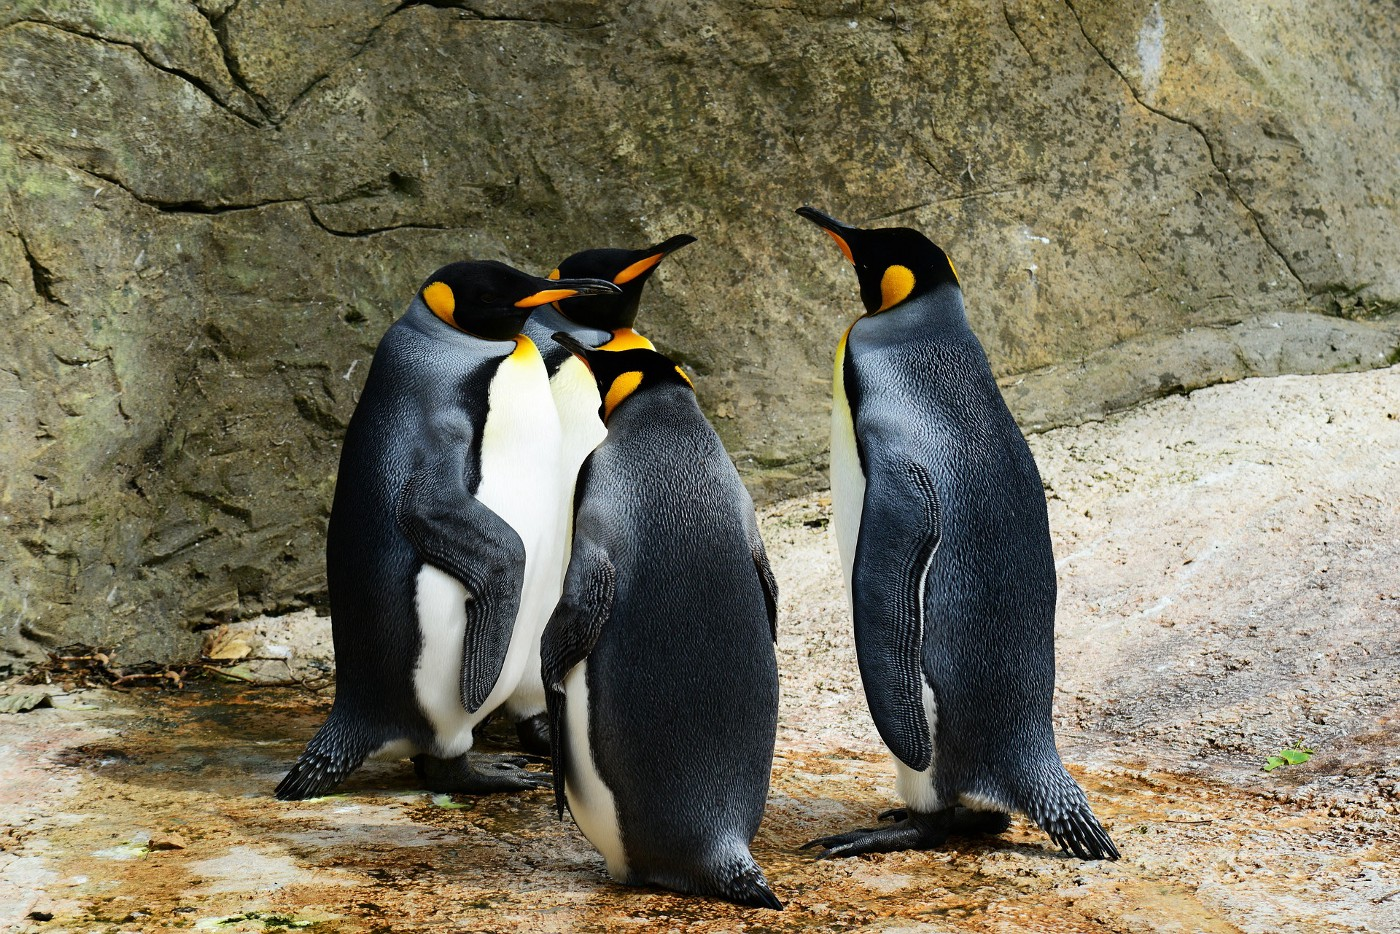 Four king penguins hanging out on a rock